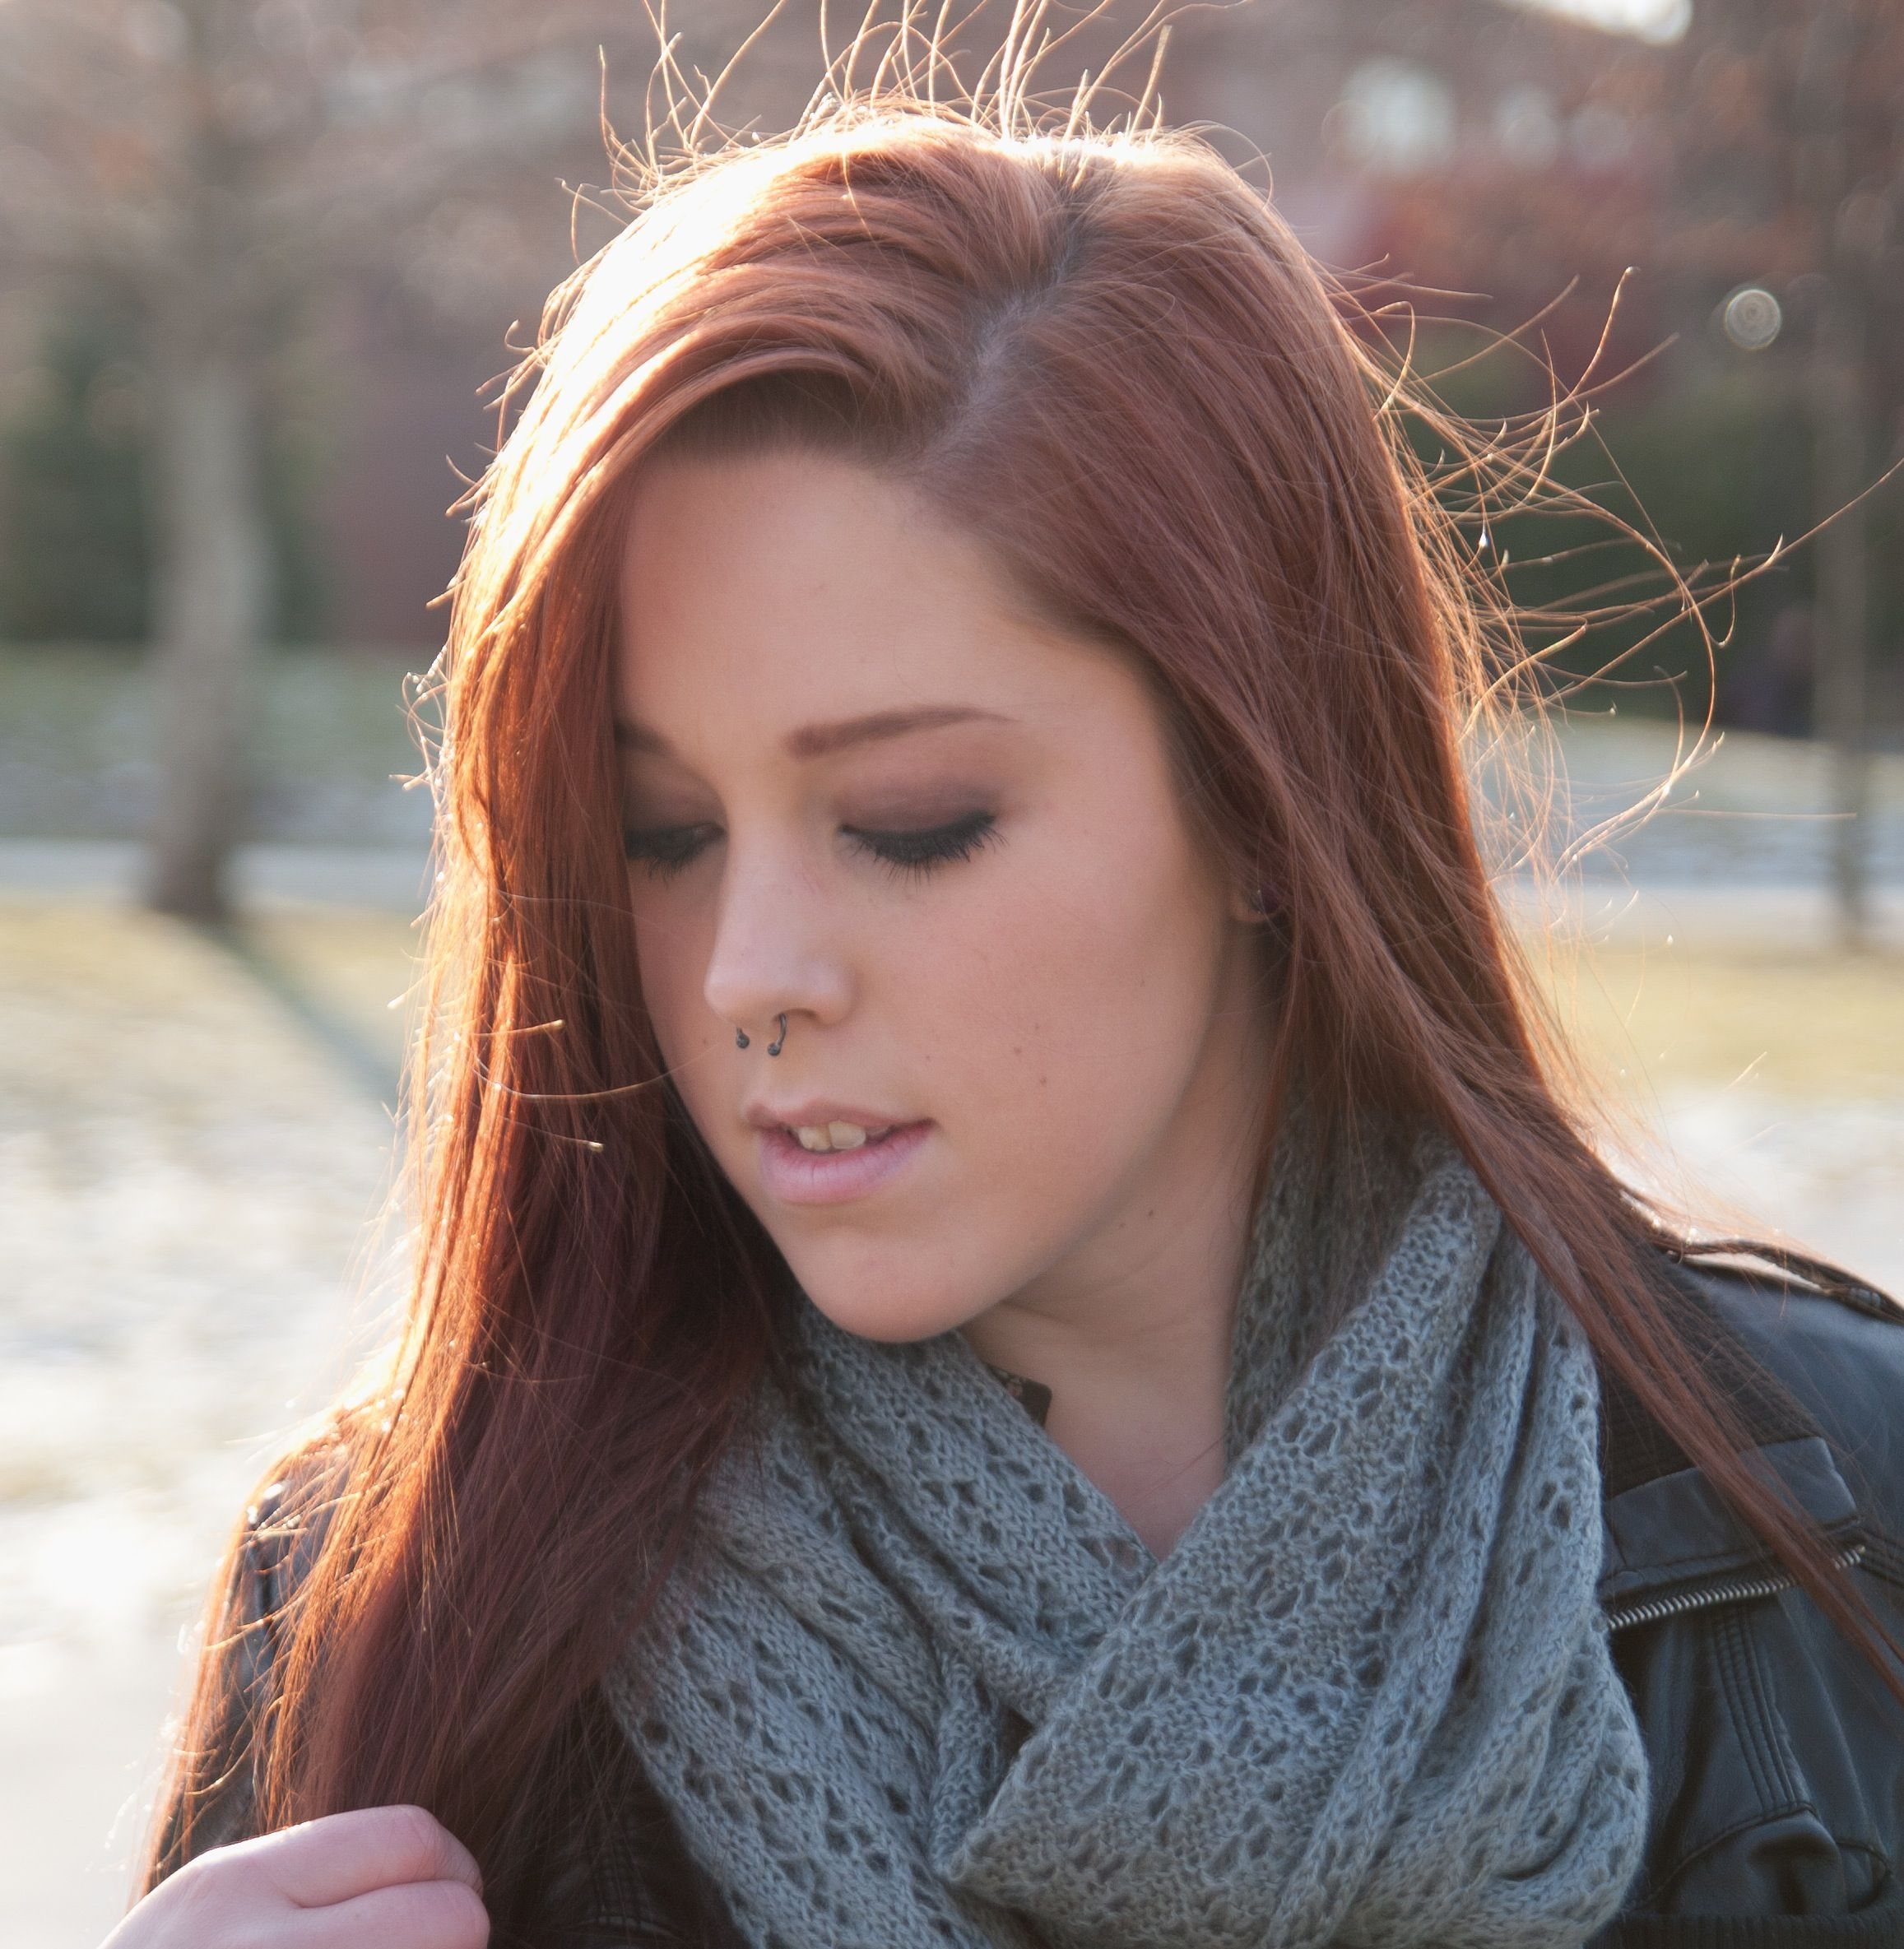 Images about hair colors and styles on pinterest - Winter Hair Colors Pinterest